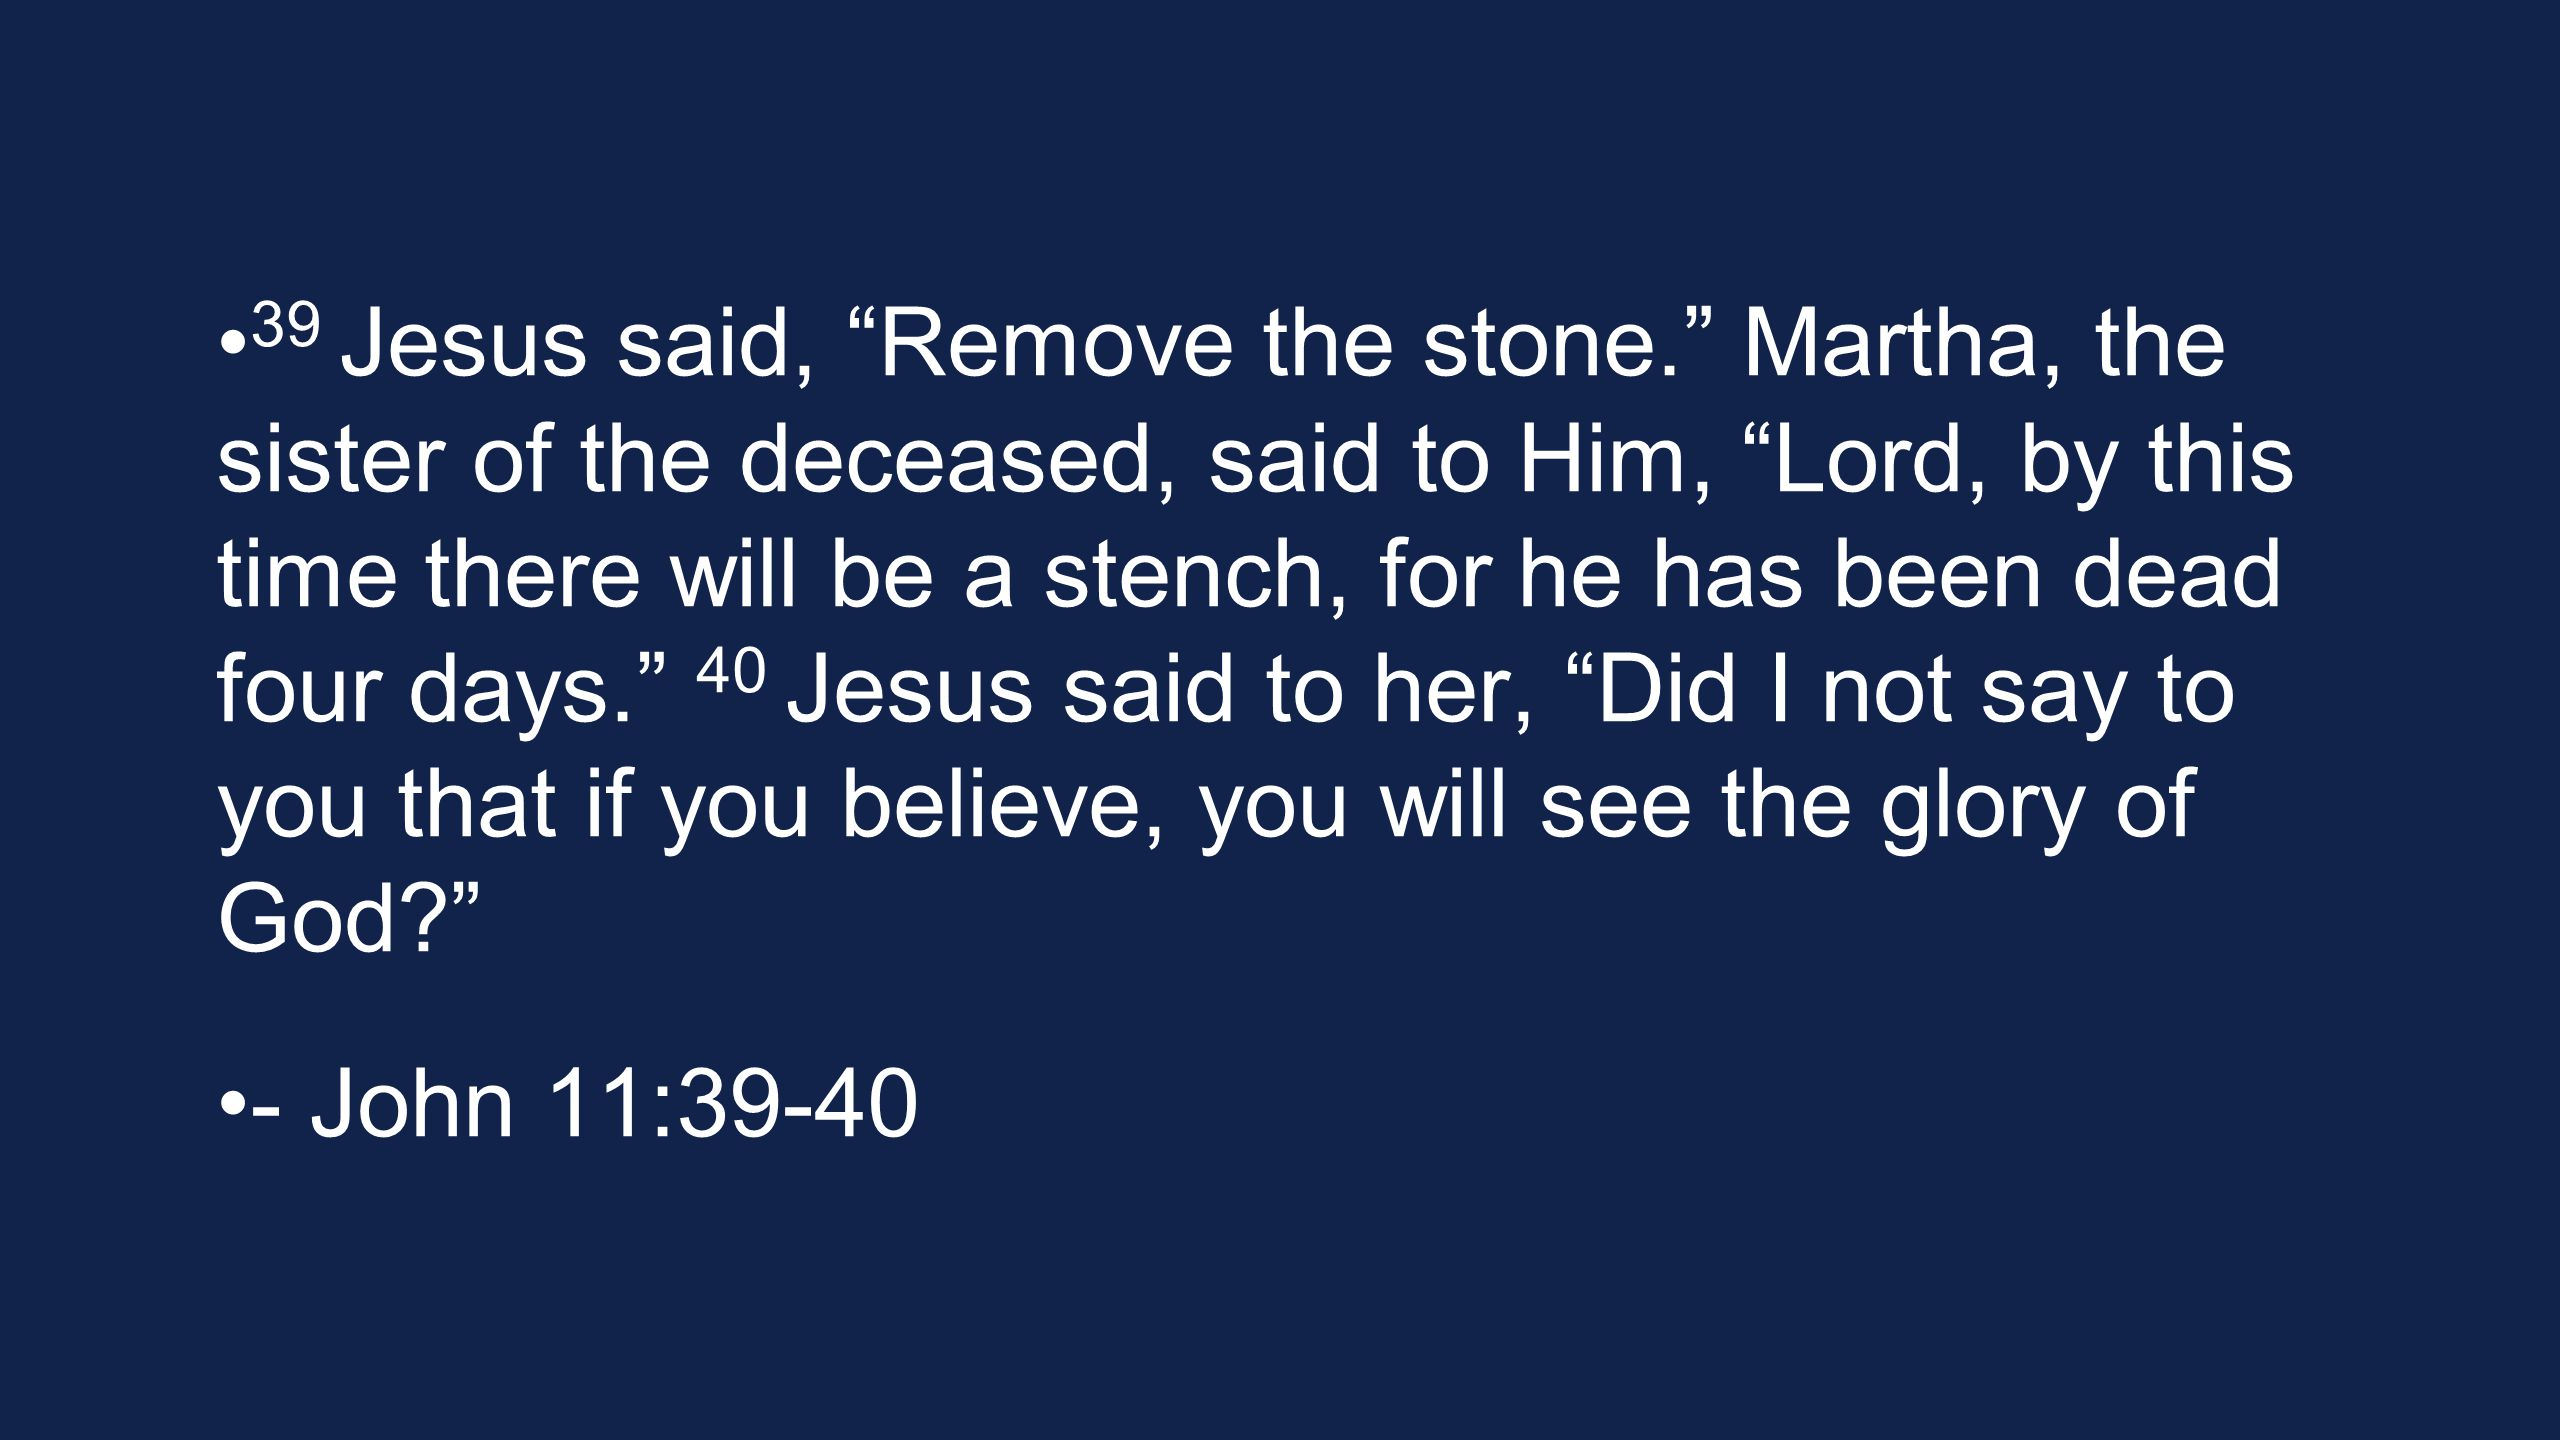 39 Jesus said, Remove the stone. Martha, the sister of the deceased, said to Him, Lord, by this time there will be a stench, for he has been dead four days. 40 Jesus said to her, Did I not say to you that if you believe, you will see the glory of God - John 11:39-40